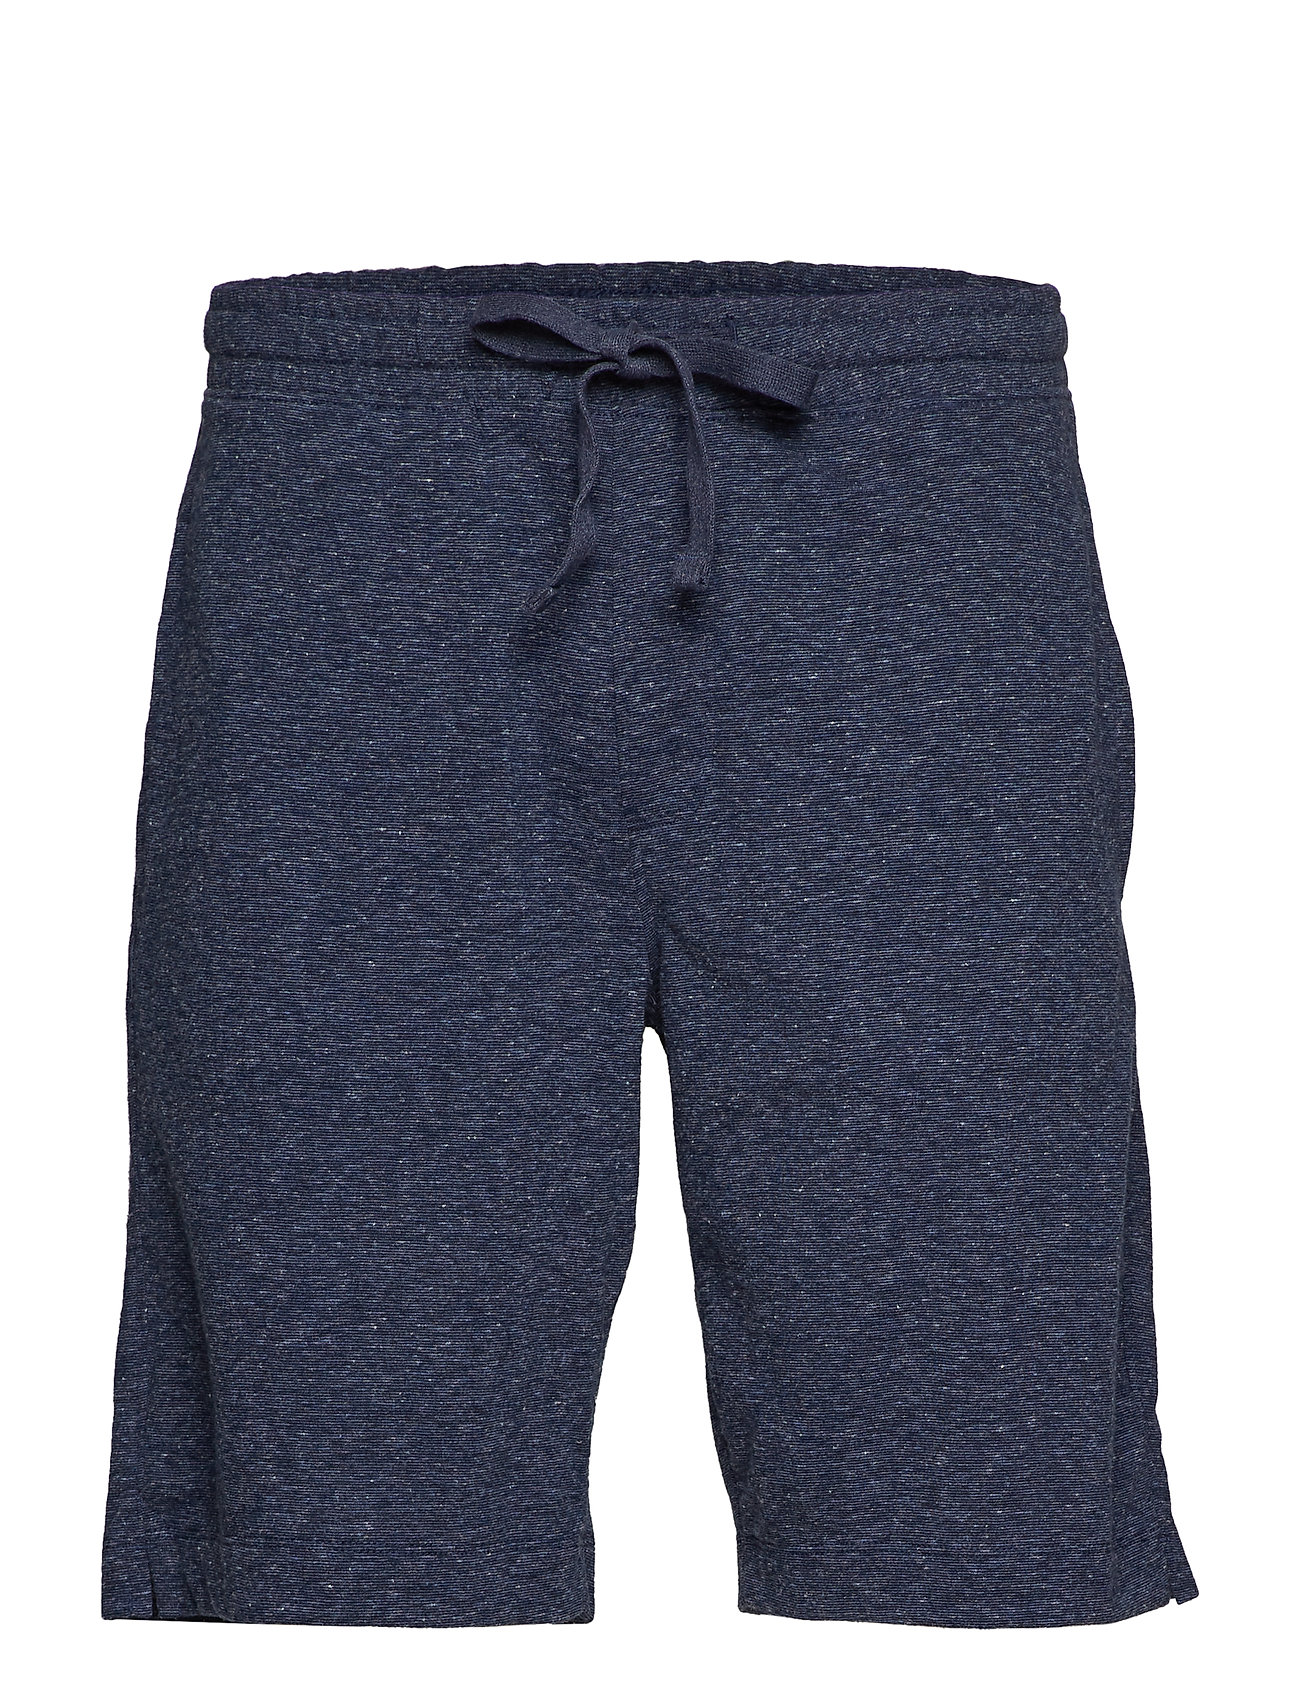 "GAP 9.5"" Drawstring Jersey Shorts - NAVY MARL"